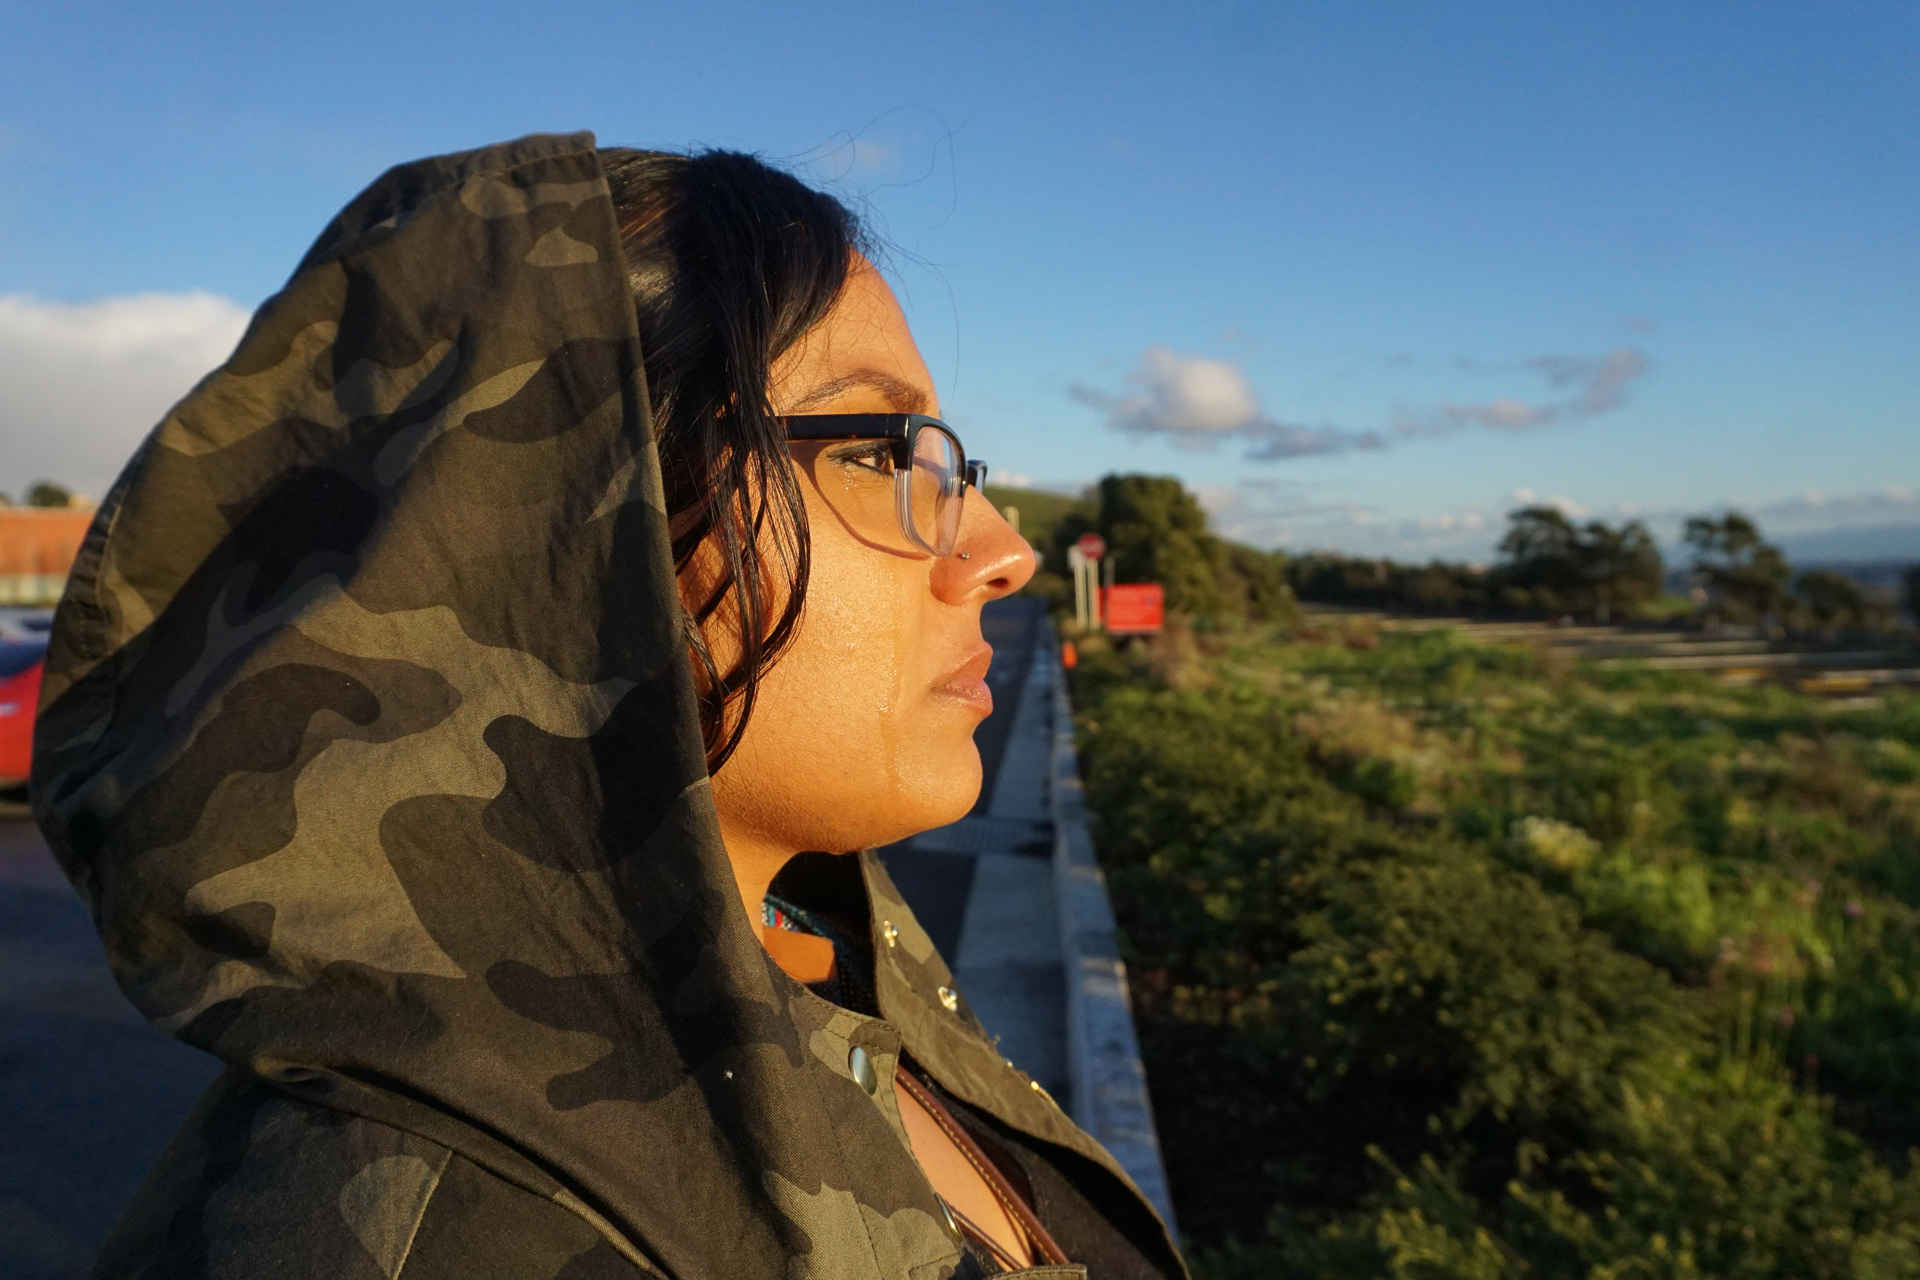 A sister weeps at a sentimental location as she remembers her brother.